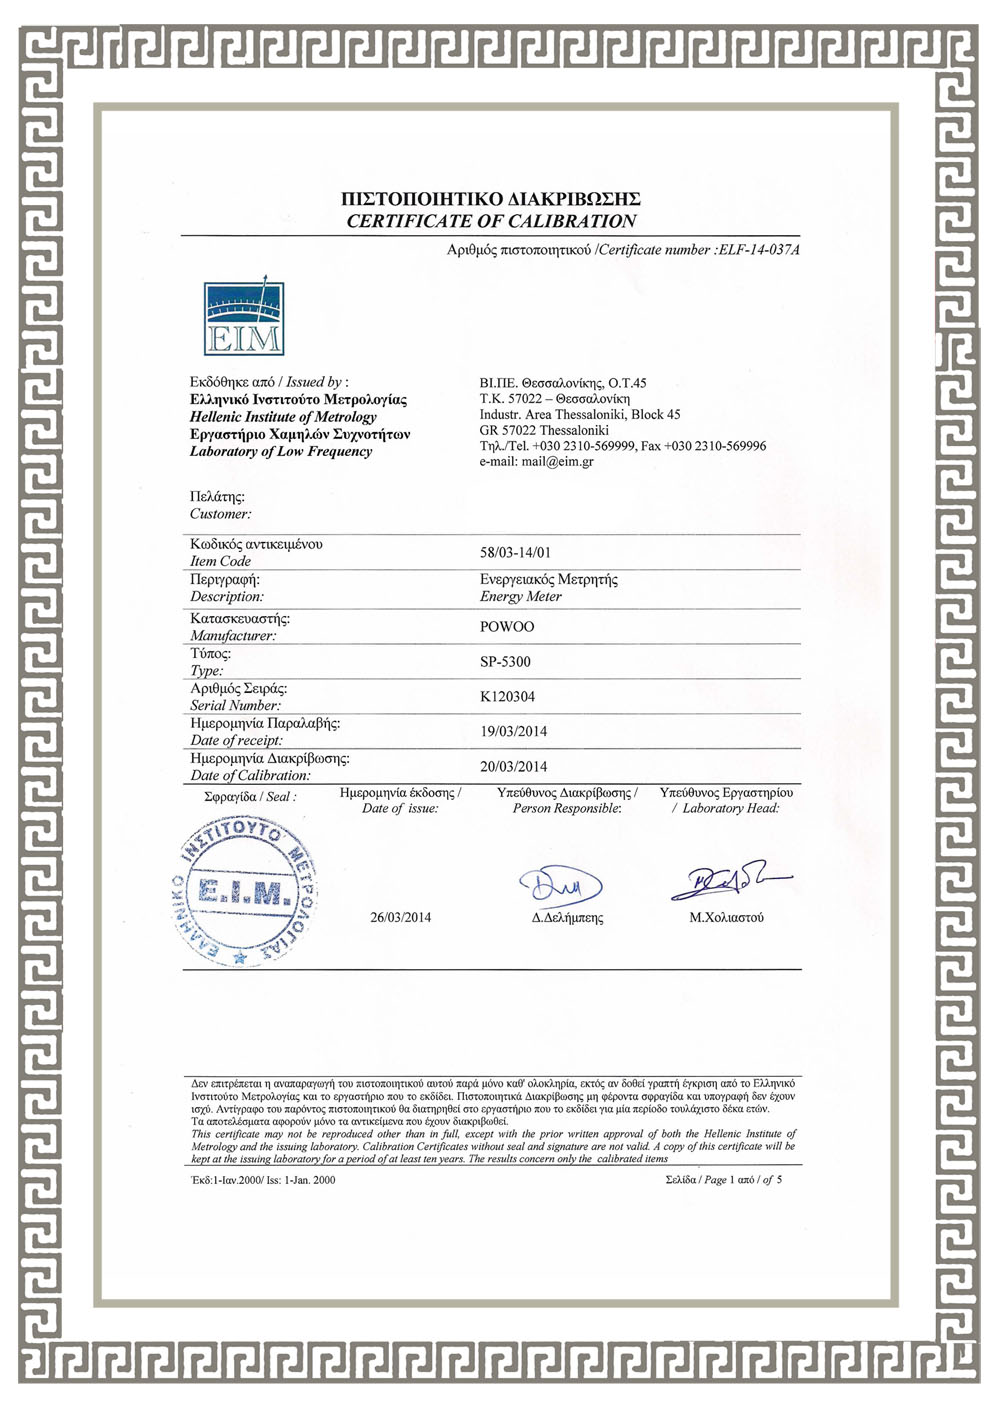 Certificate of Calibration